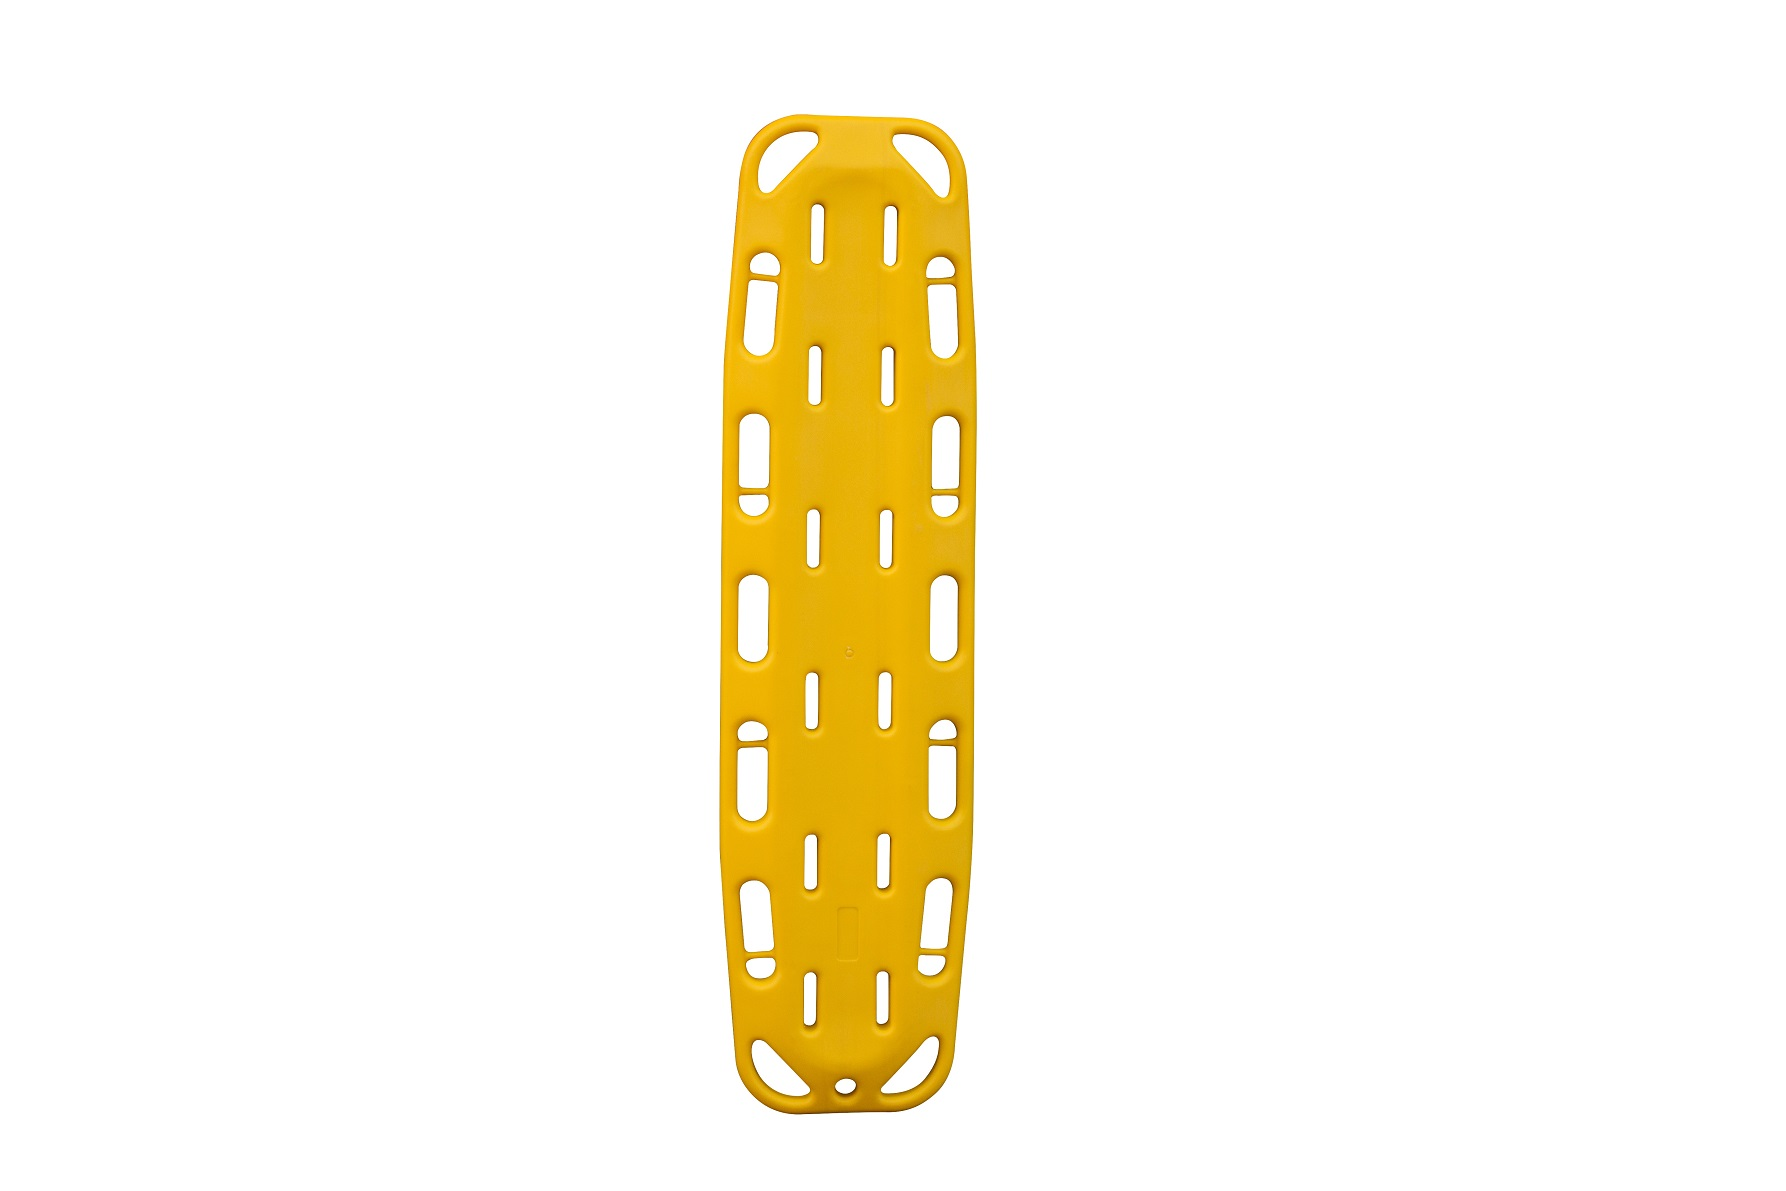 HS-A005 pediatric yellow spine board